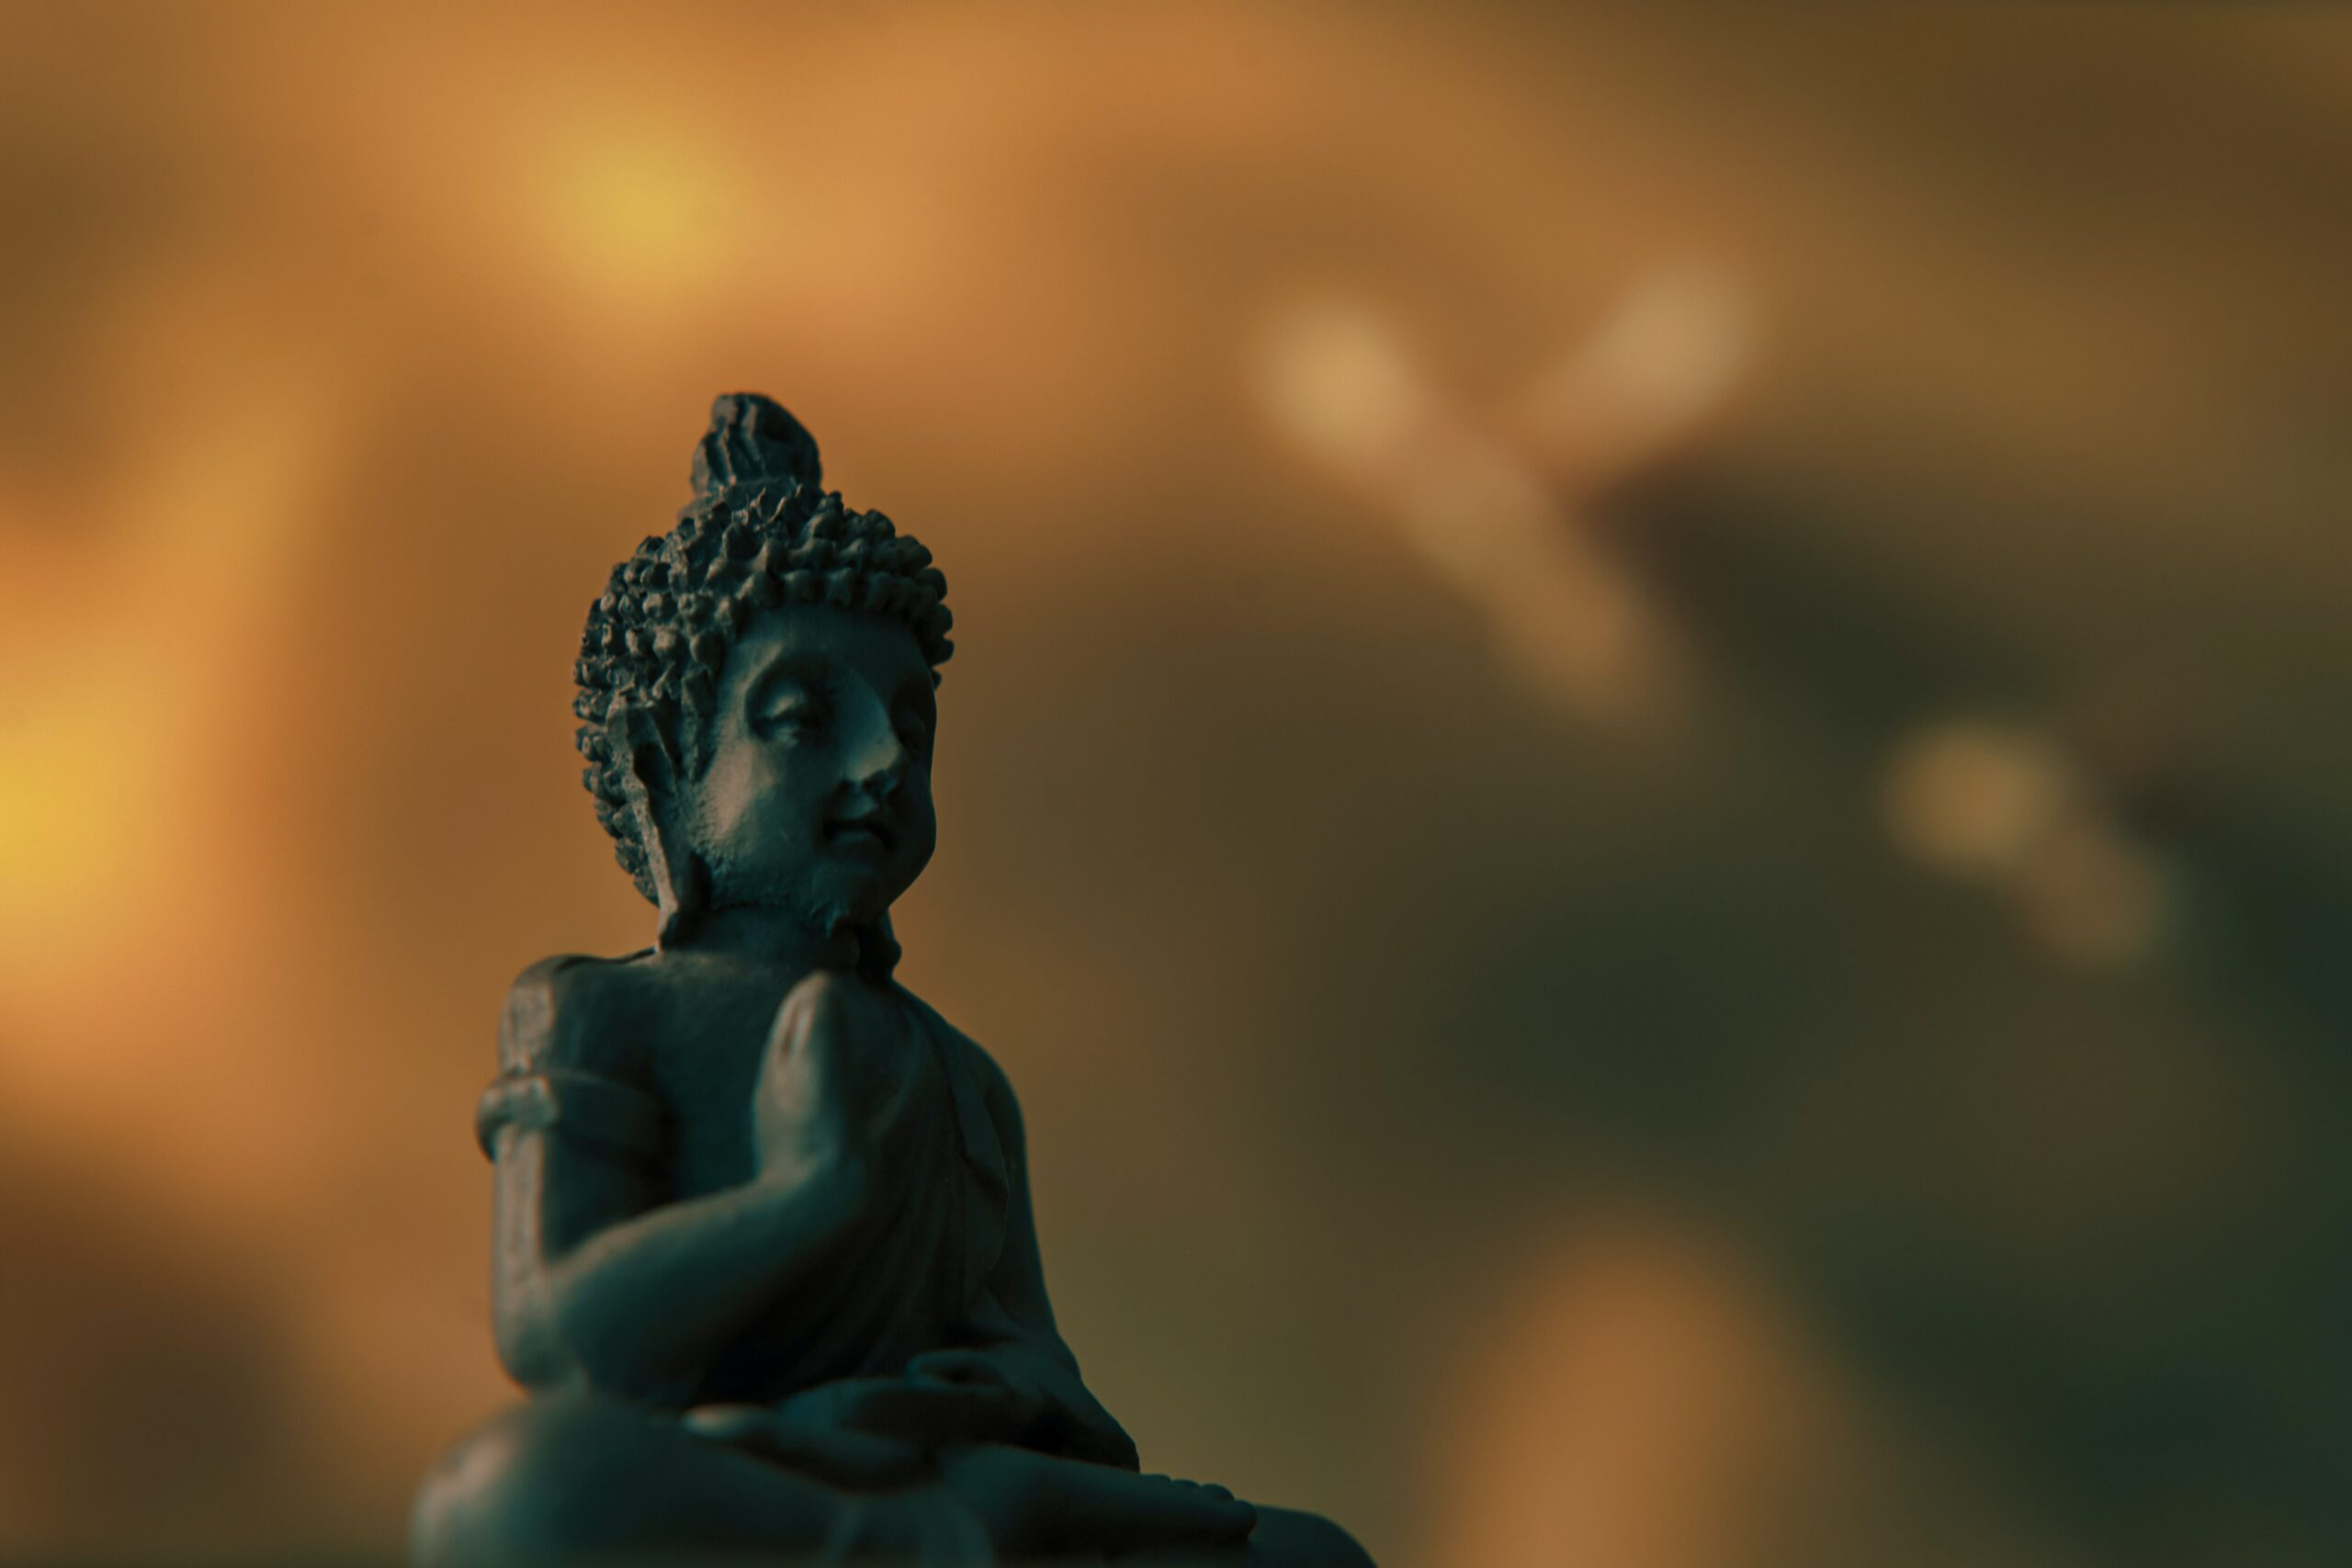 If Meditation is the Answer, then What is the Question?